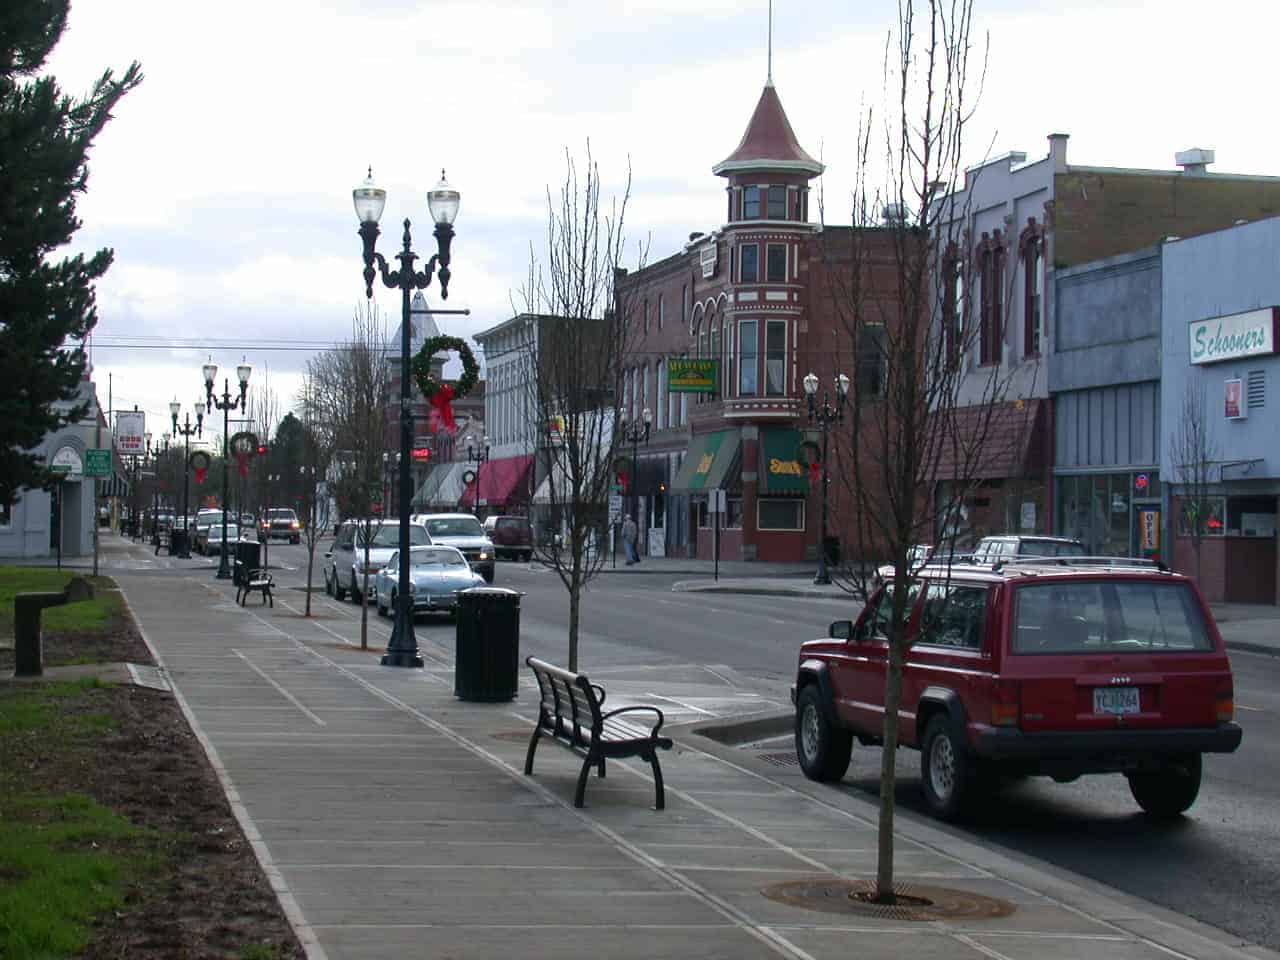 Independence, OR is one of hundreds of towns to implement community broadband to residents in need.